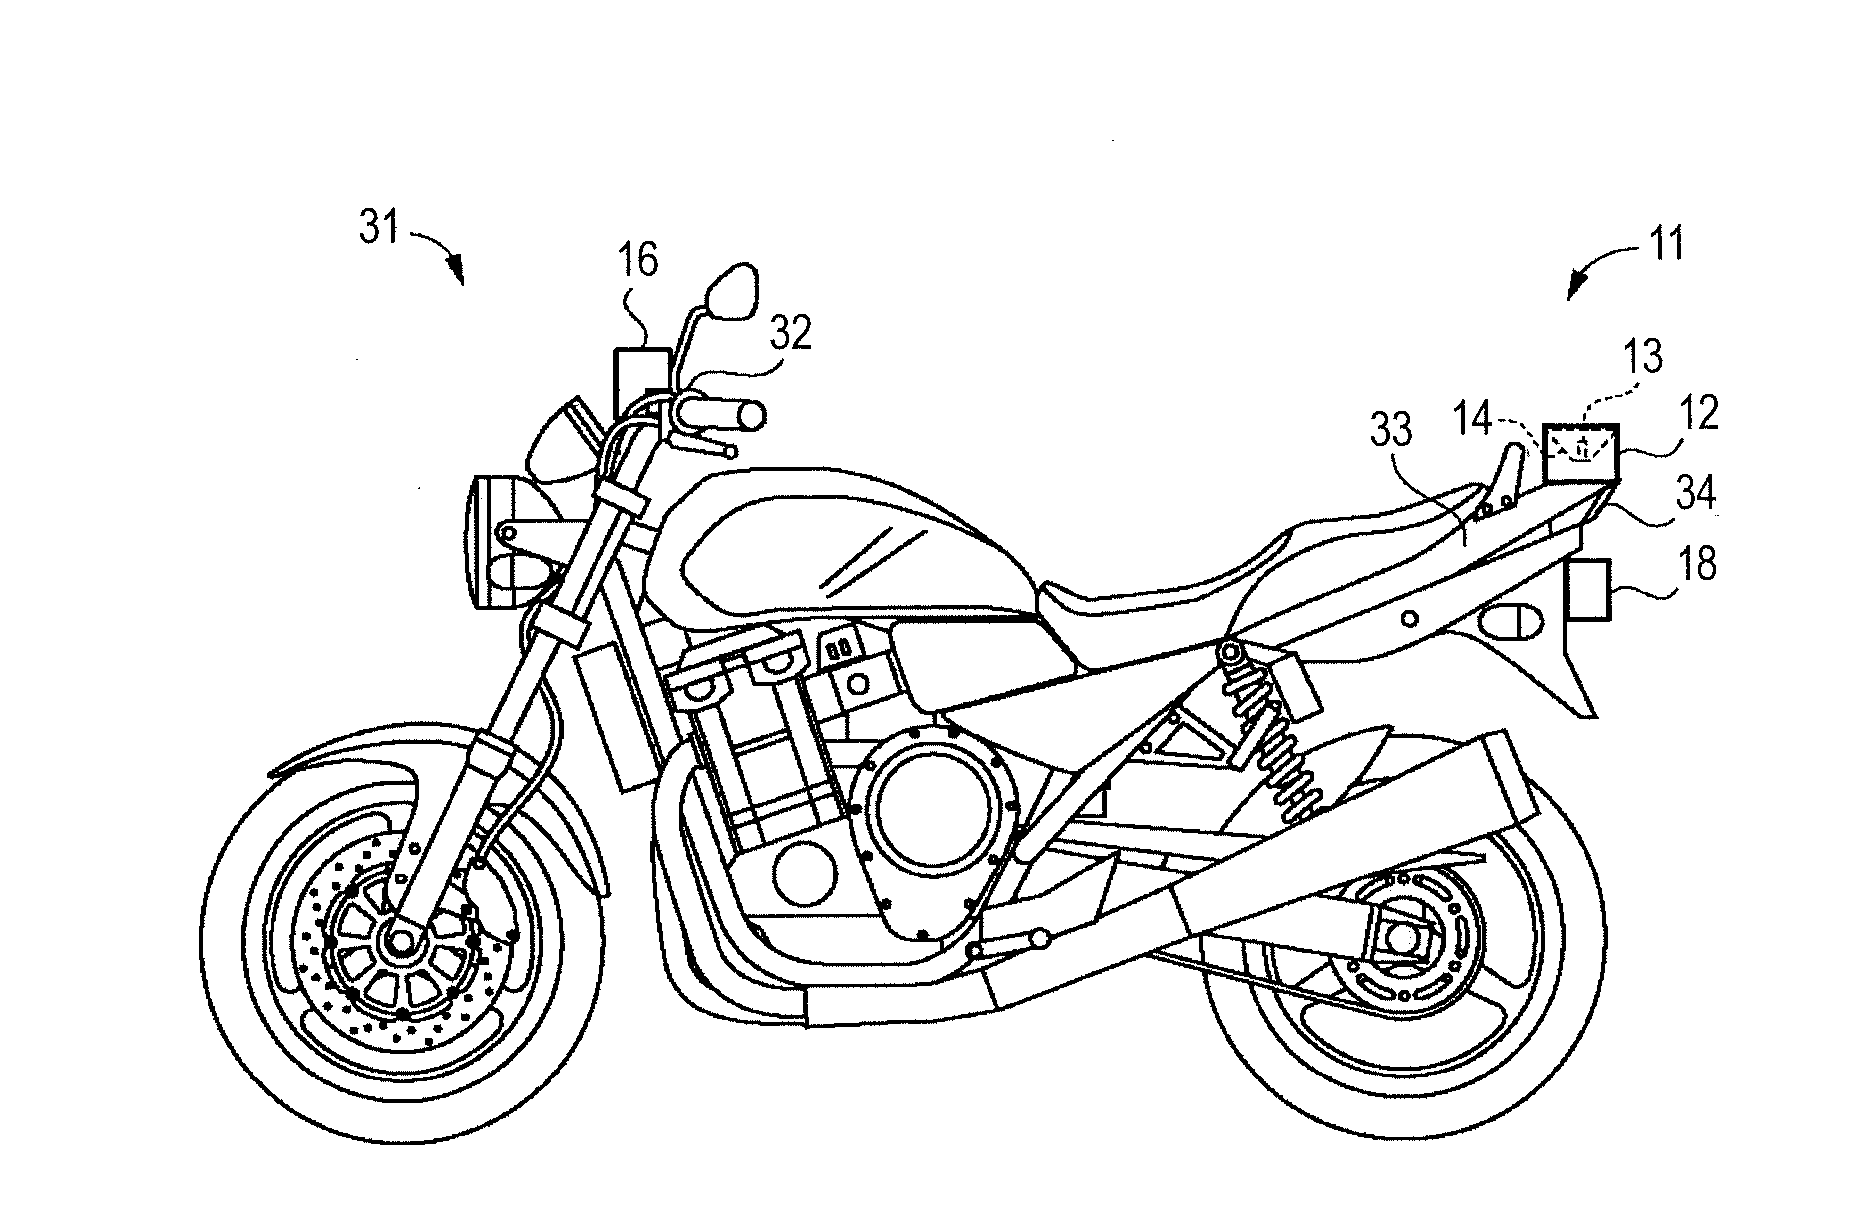 Suzuki Developing Tunnel Lighting System For Motorcycles